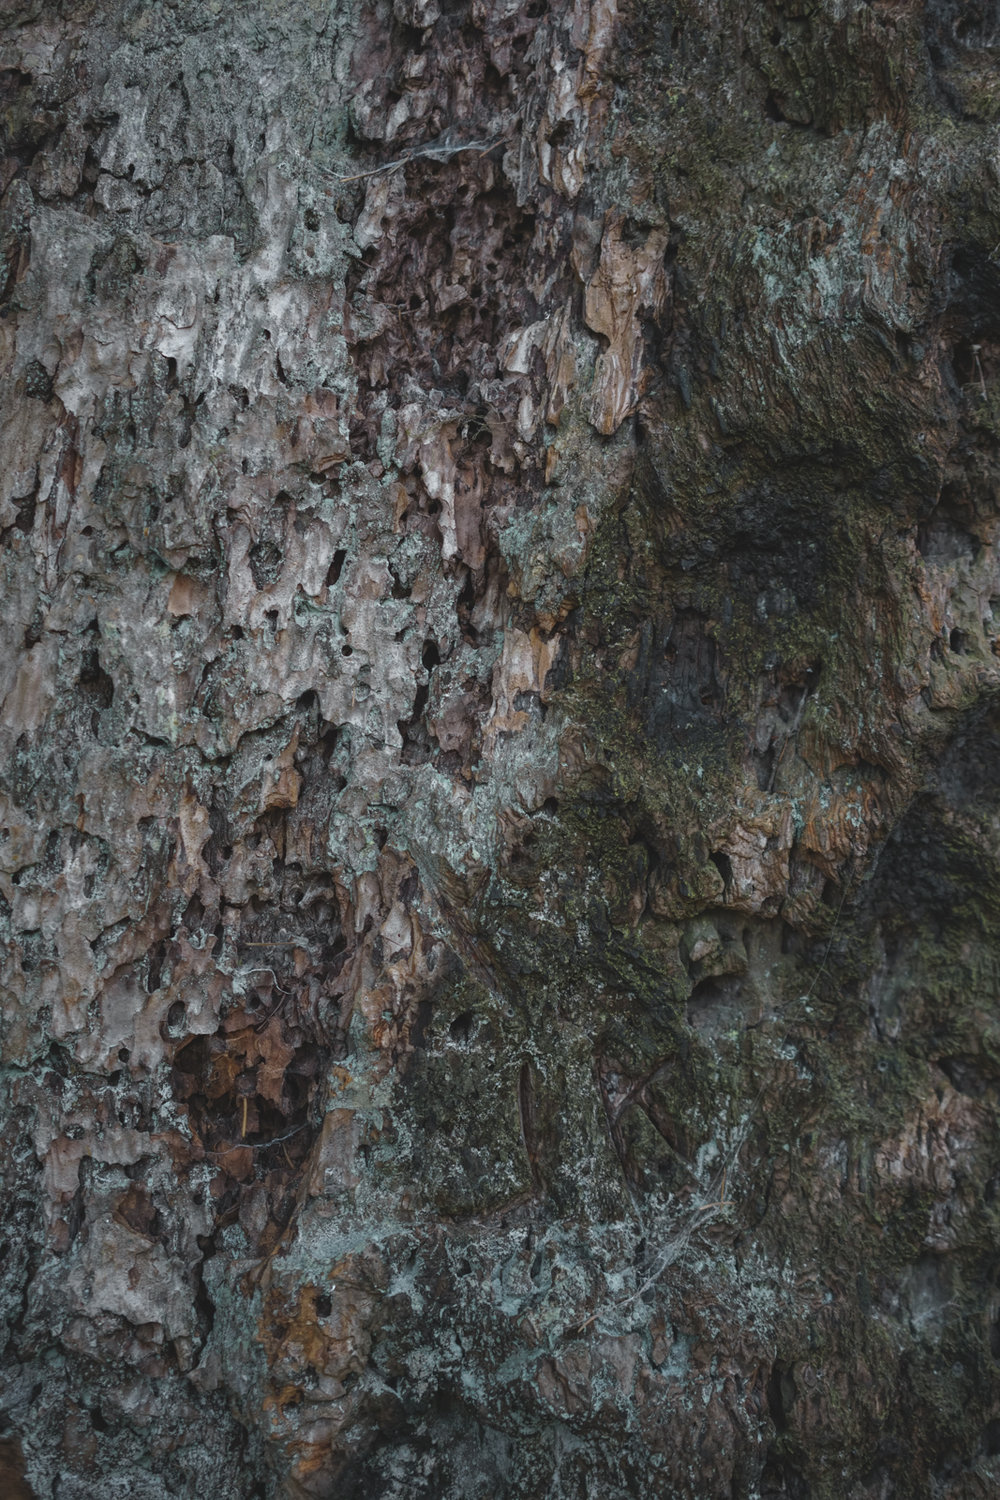 The tree bark shows signs of wear.